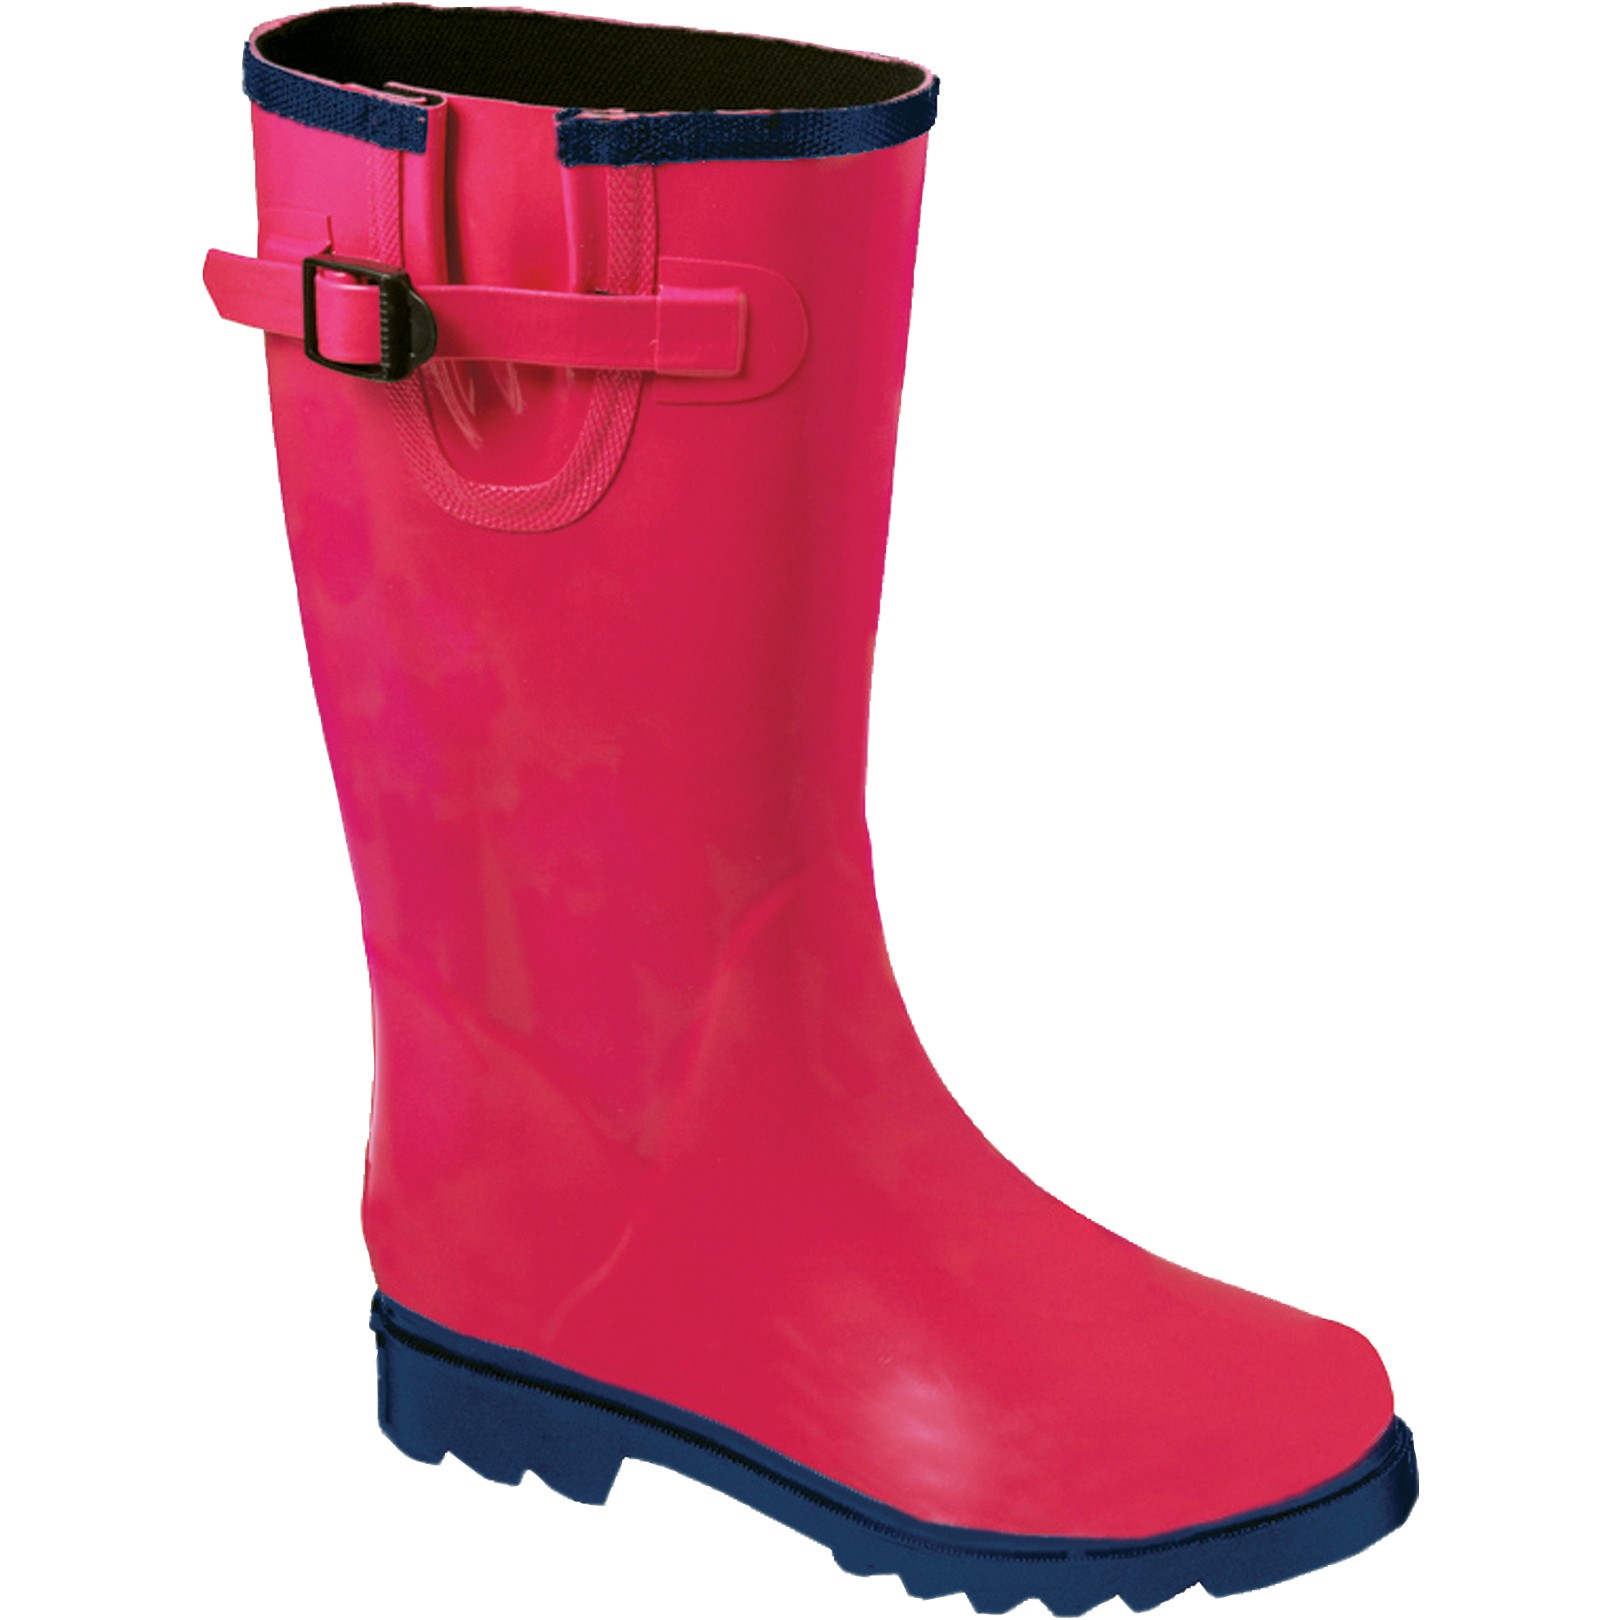 coach rain boots outlet 39uz  coach rain boots outlet